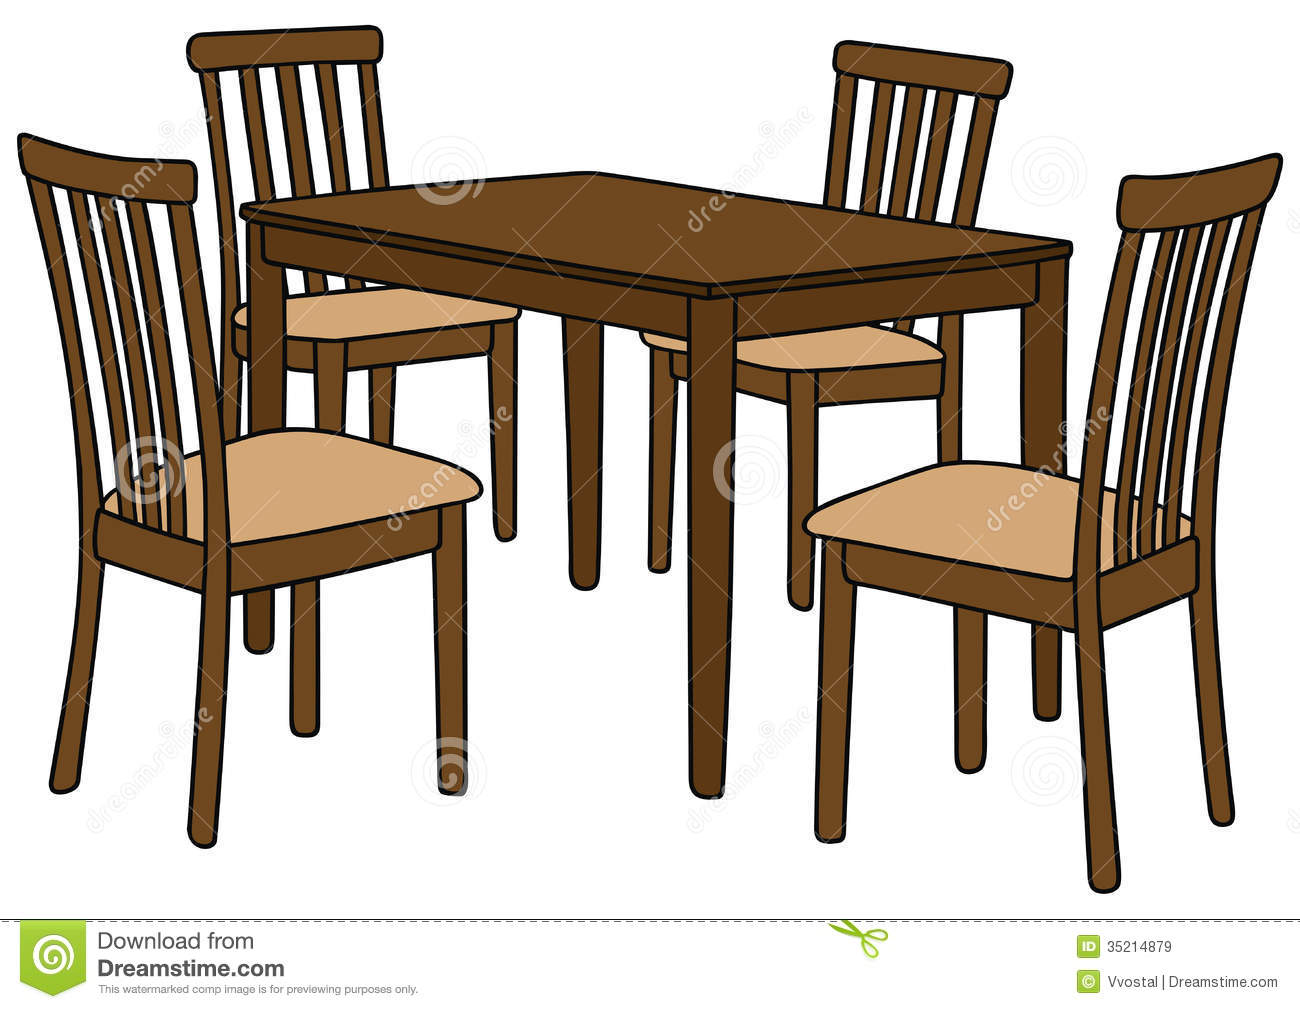 Kitchen table and chairs clipart clipart panda free for House furniture design kitchen